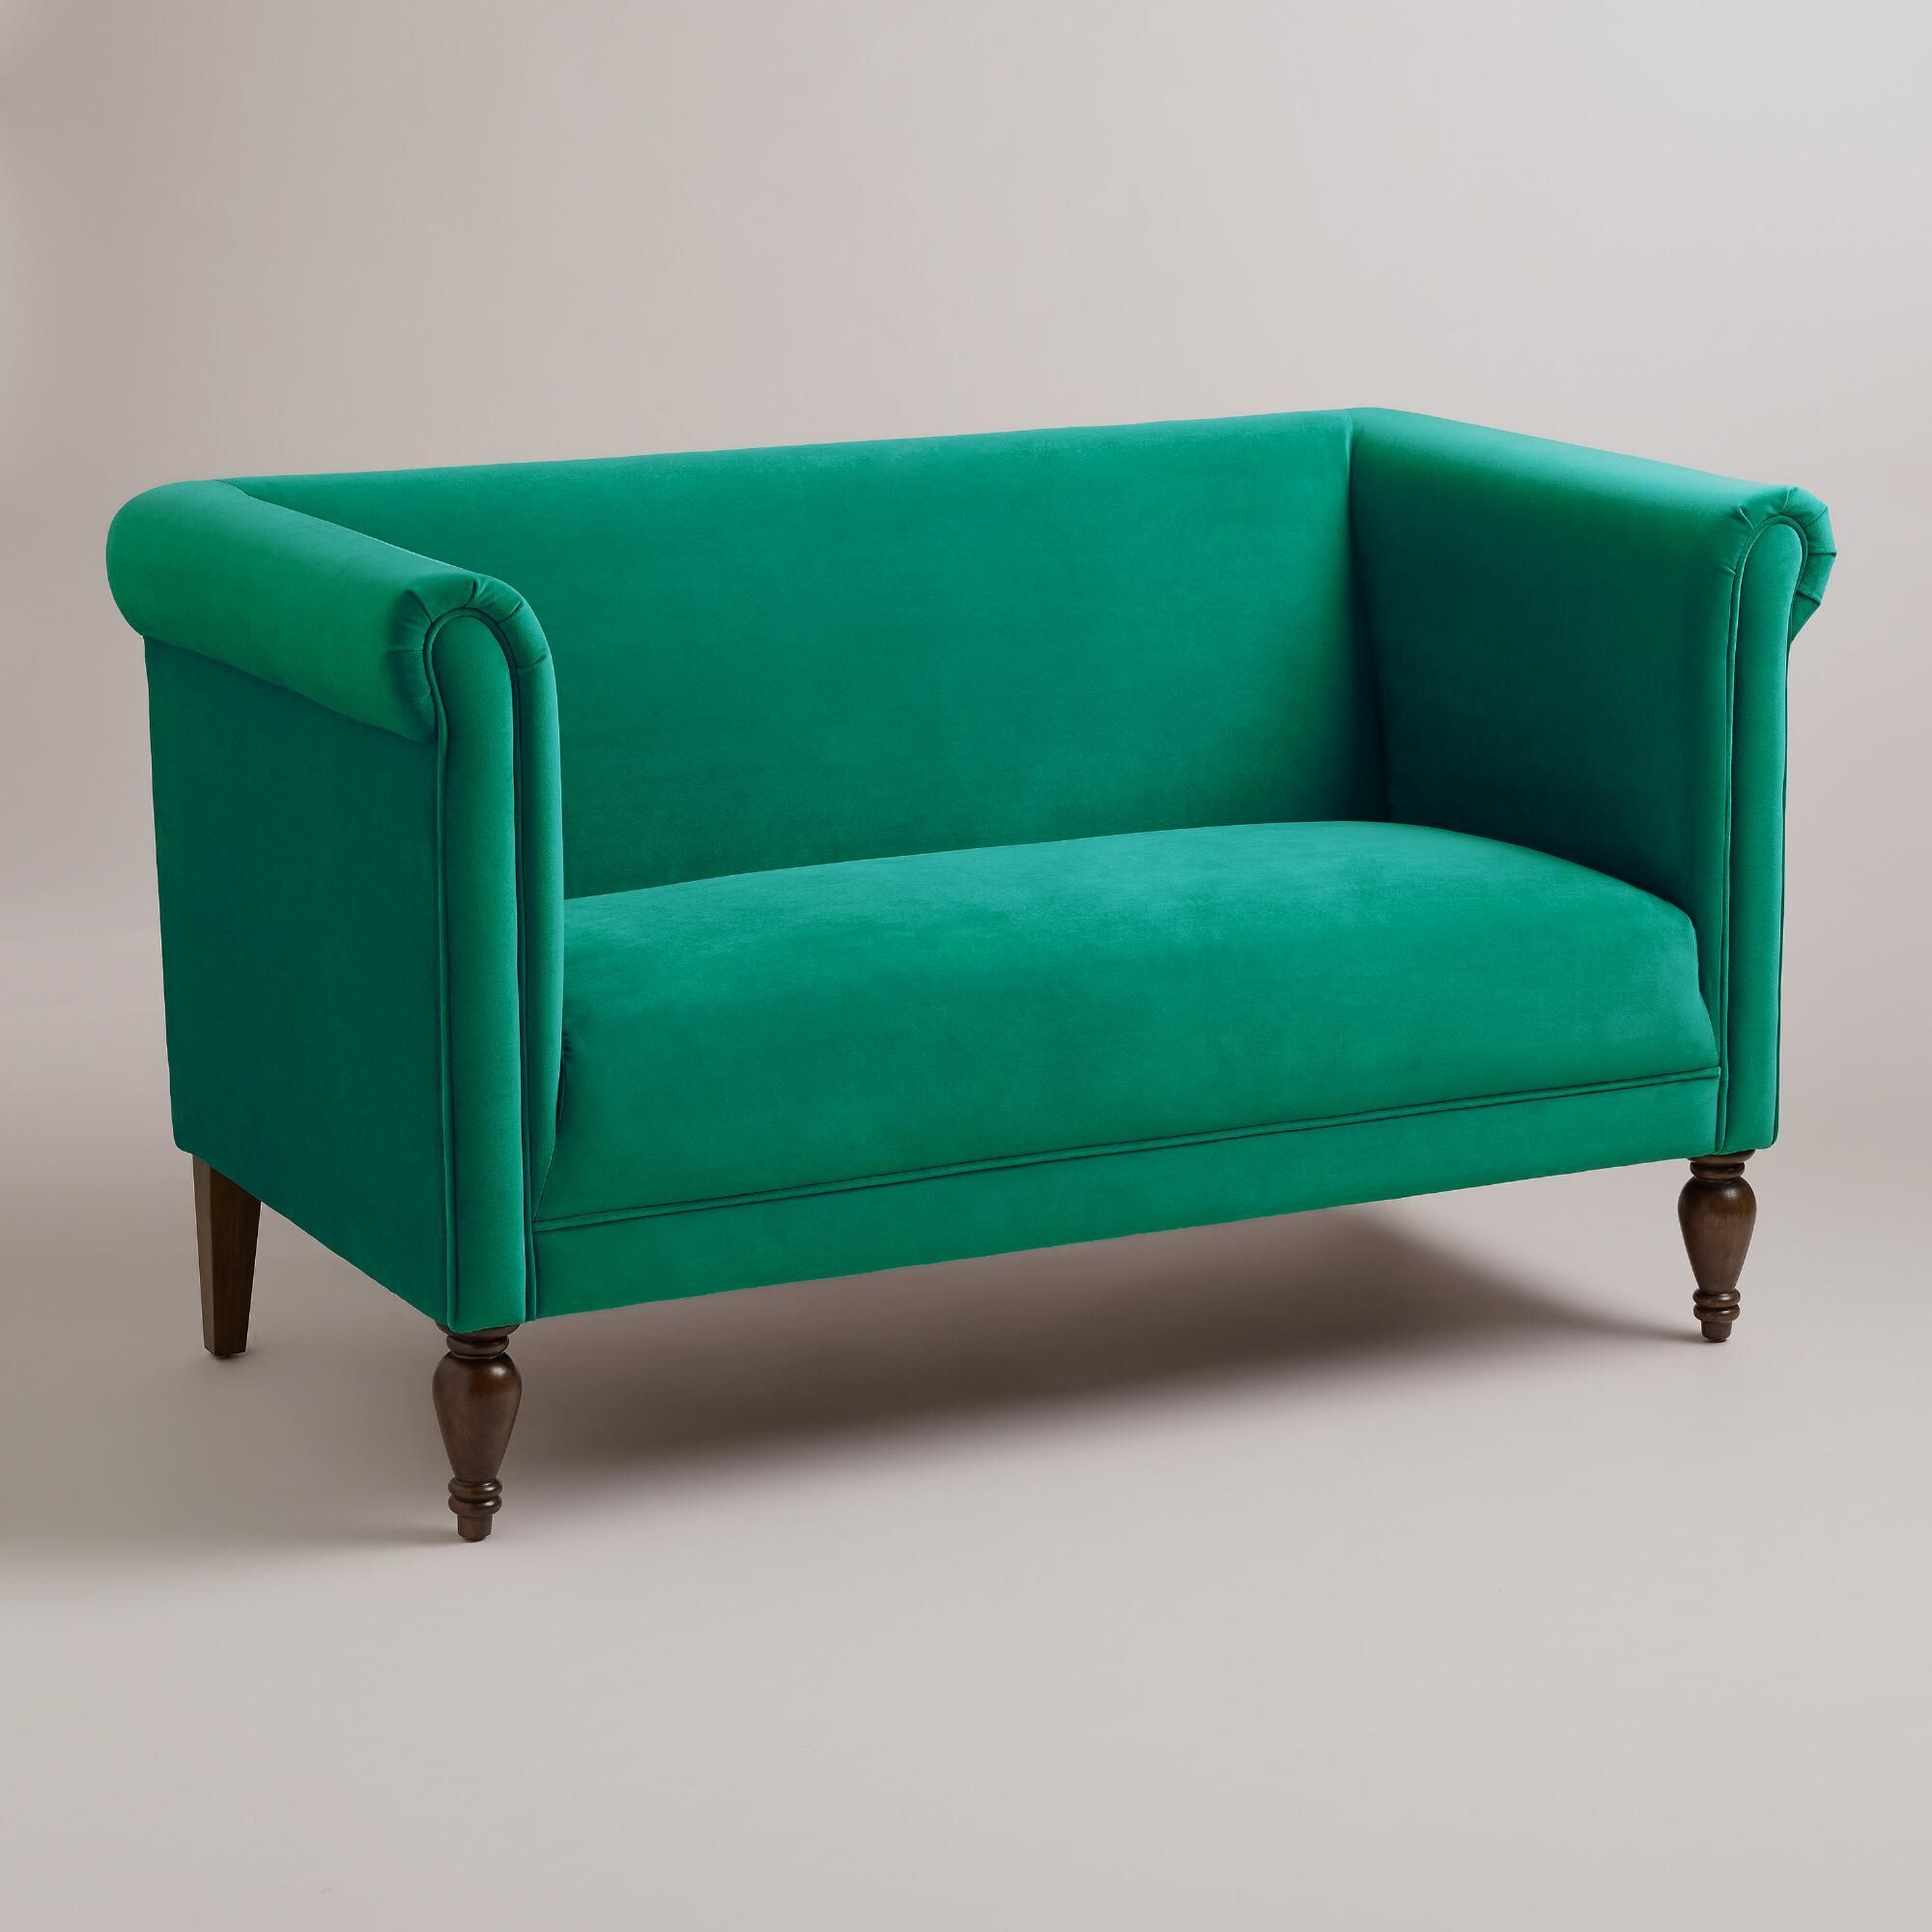 Emerald Marian Loveseat World Market 499 75 Delivery